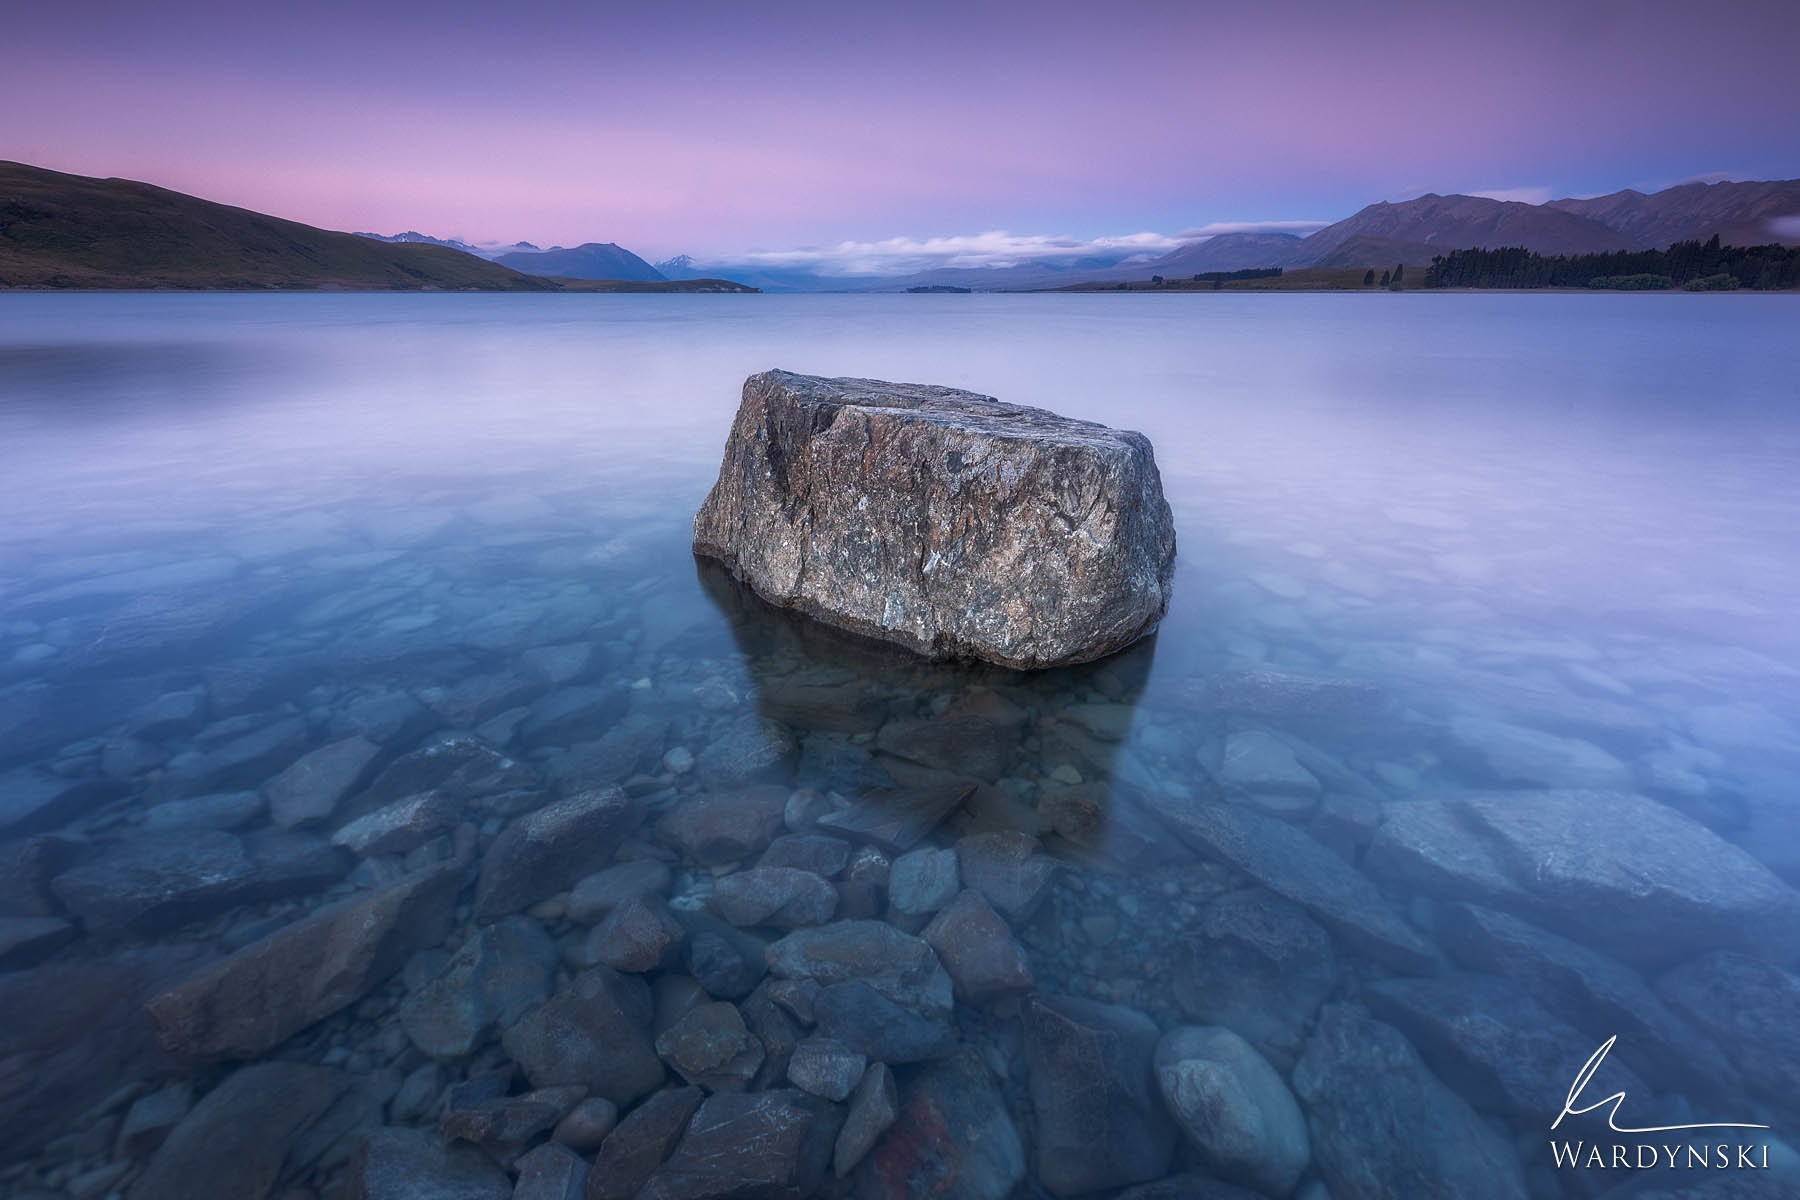 Fine Art Print | Limited Edition of 100  The pink alpine glow of summer lingers over Lake Tekapo like a good friend who doesn...